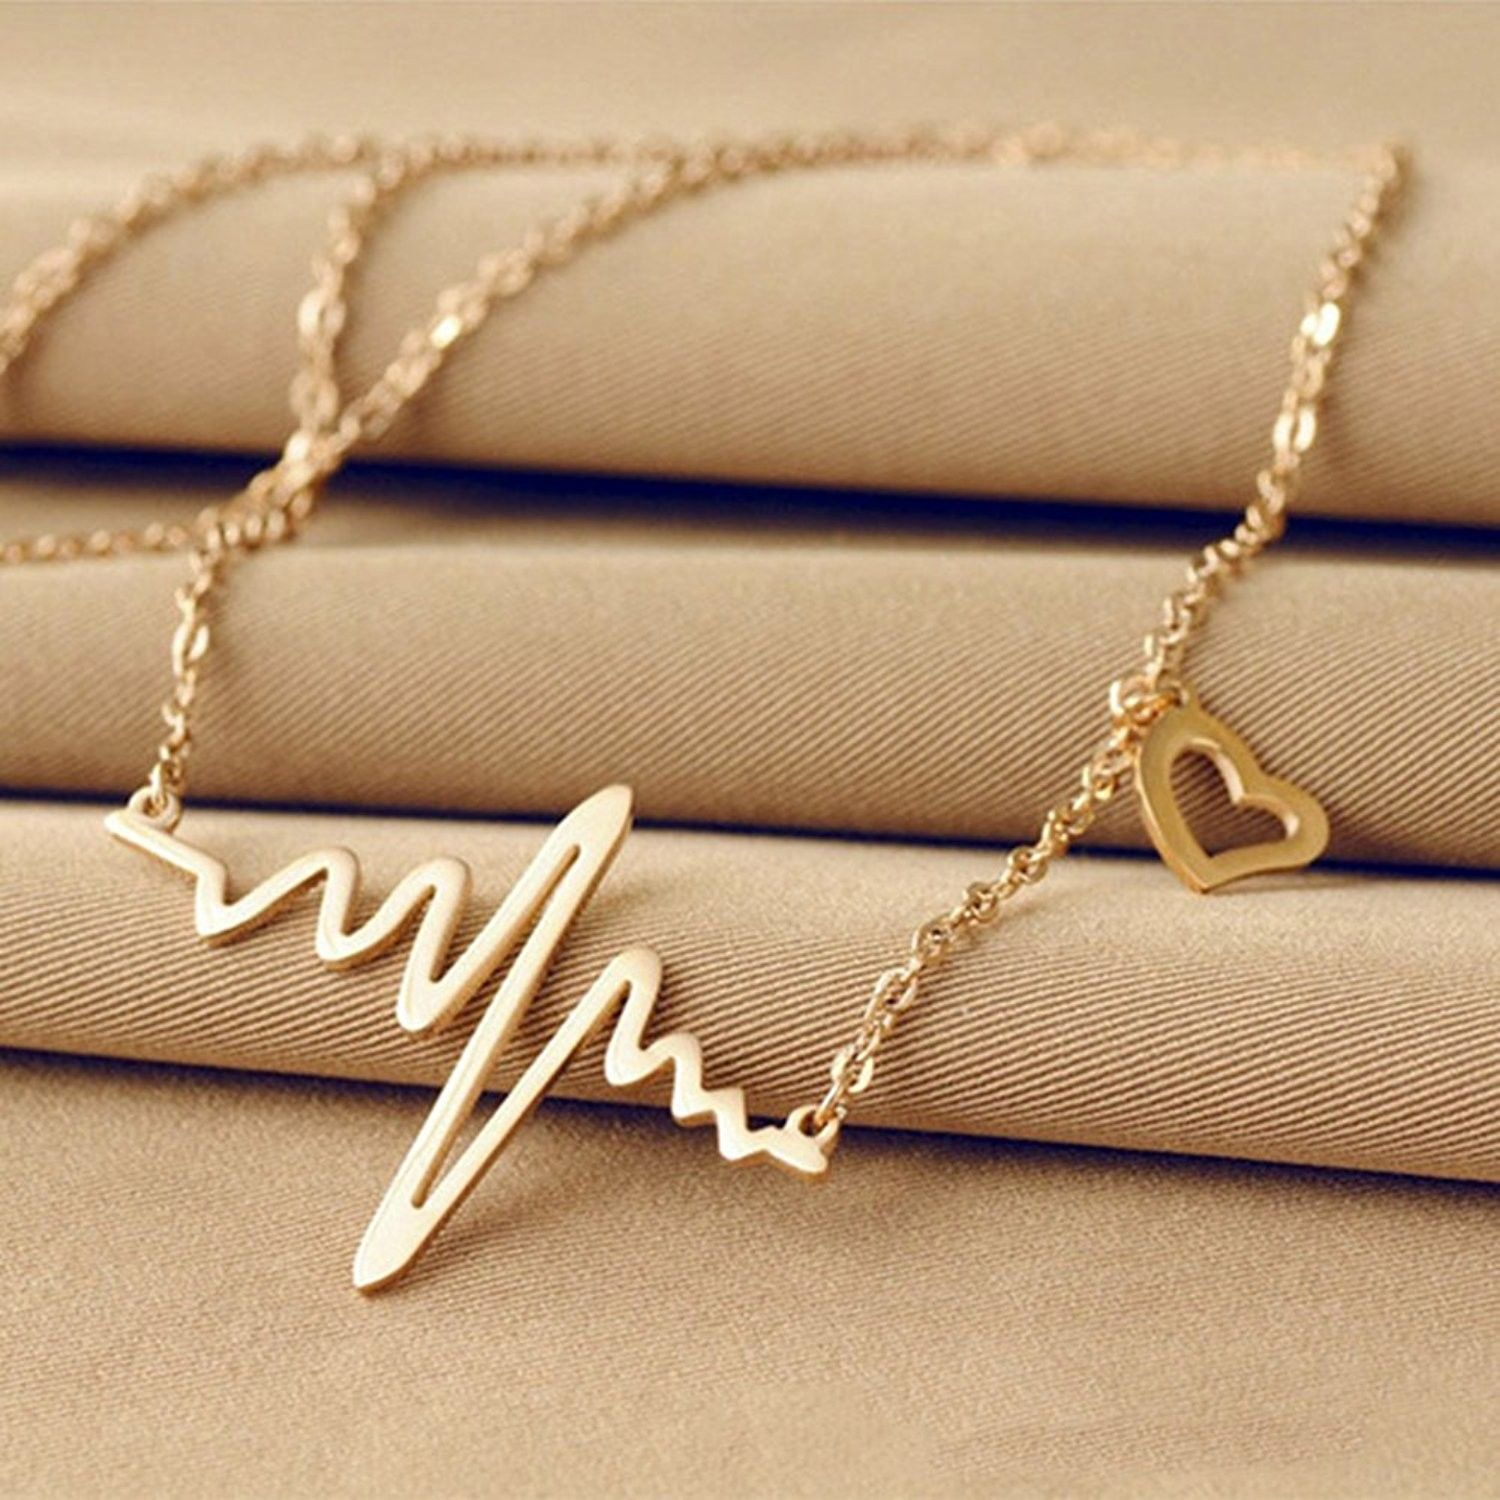 ECG Heart Bohemian Life Love Silver Plated Pendant Necklace